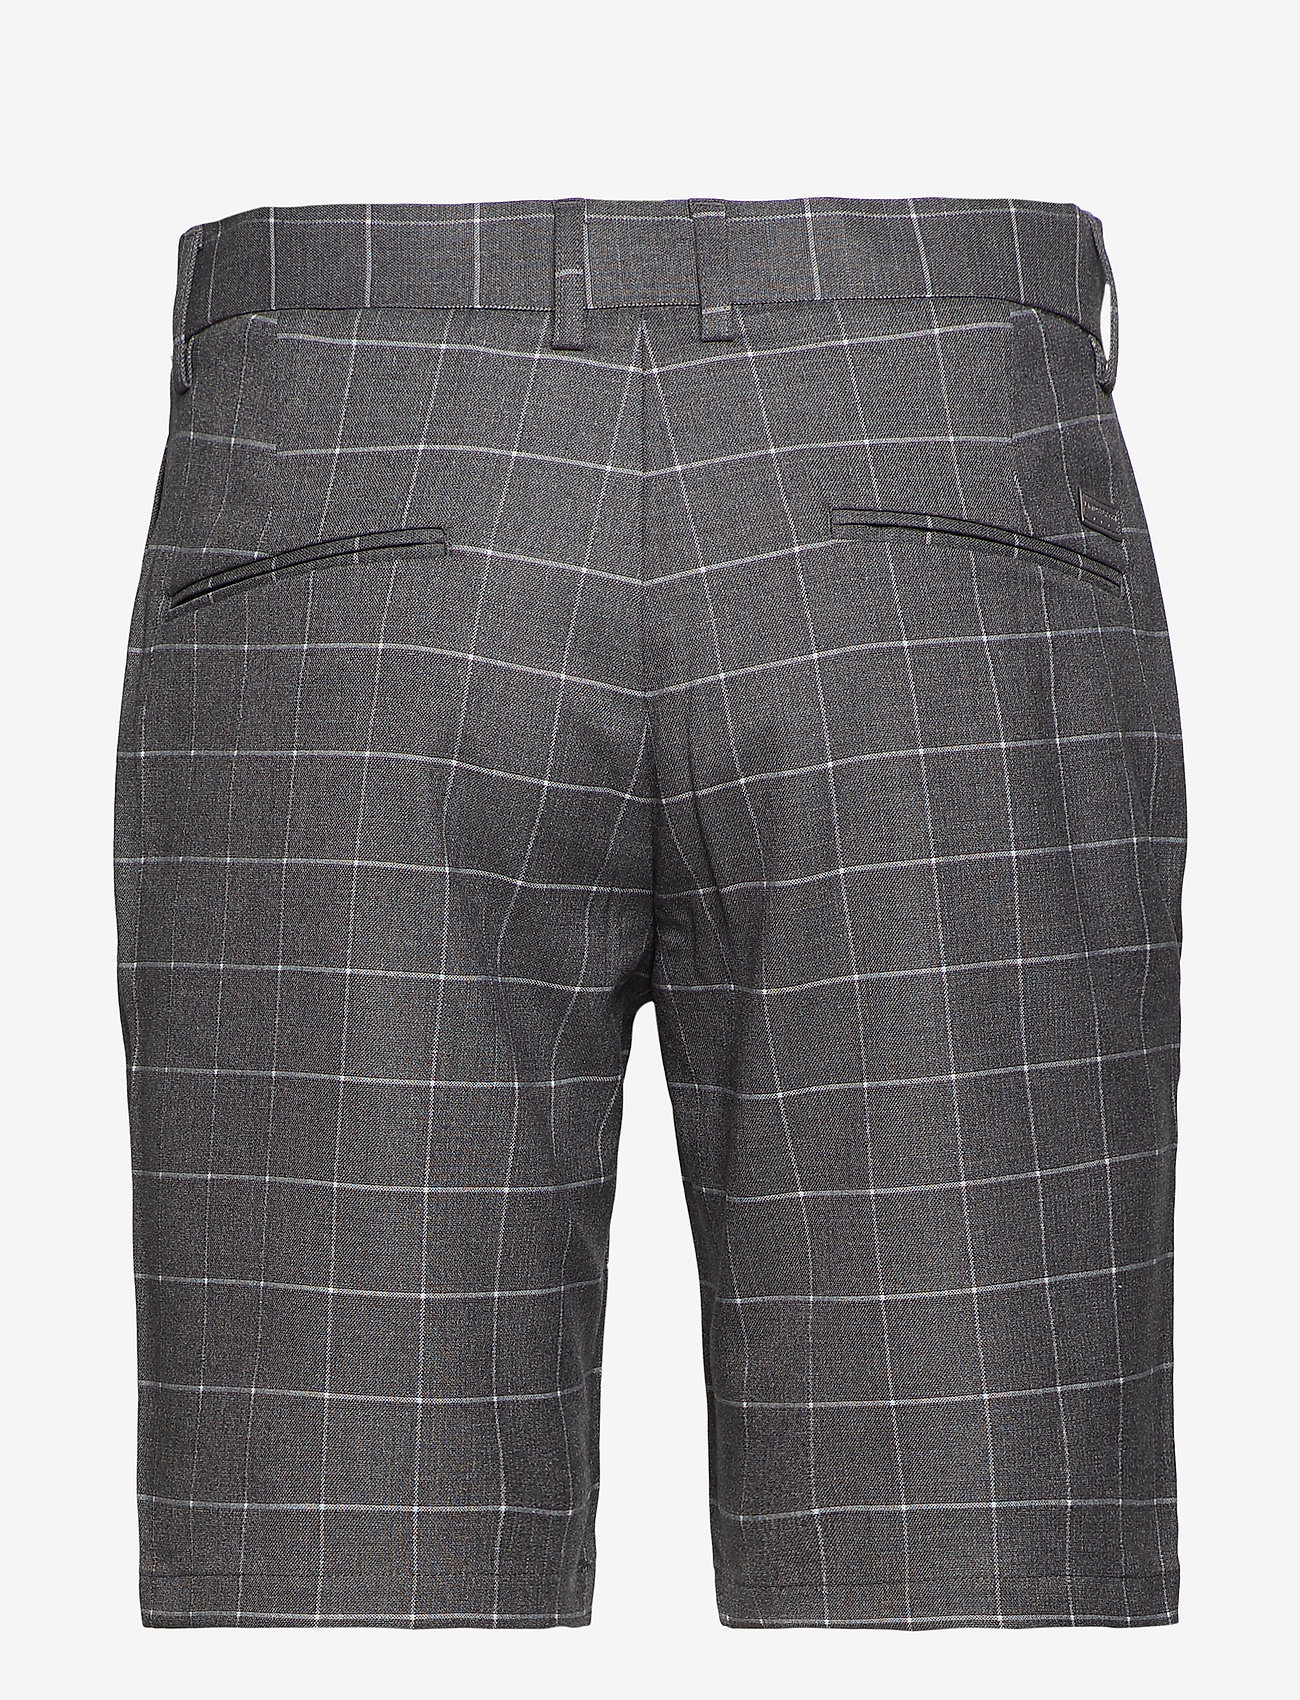 Checked Shorts (Grey) (59.95 €) - Lindbergh lq3de